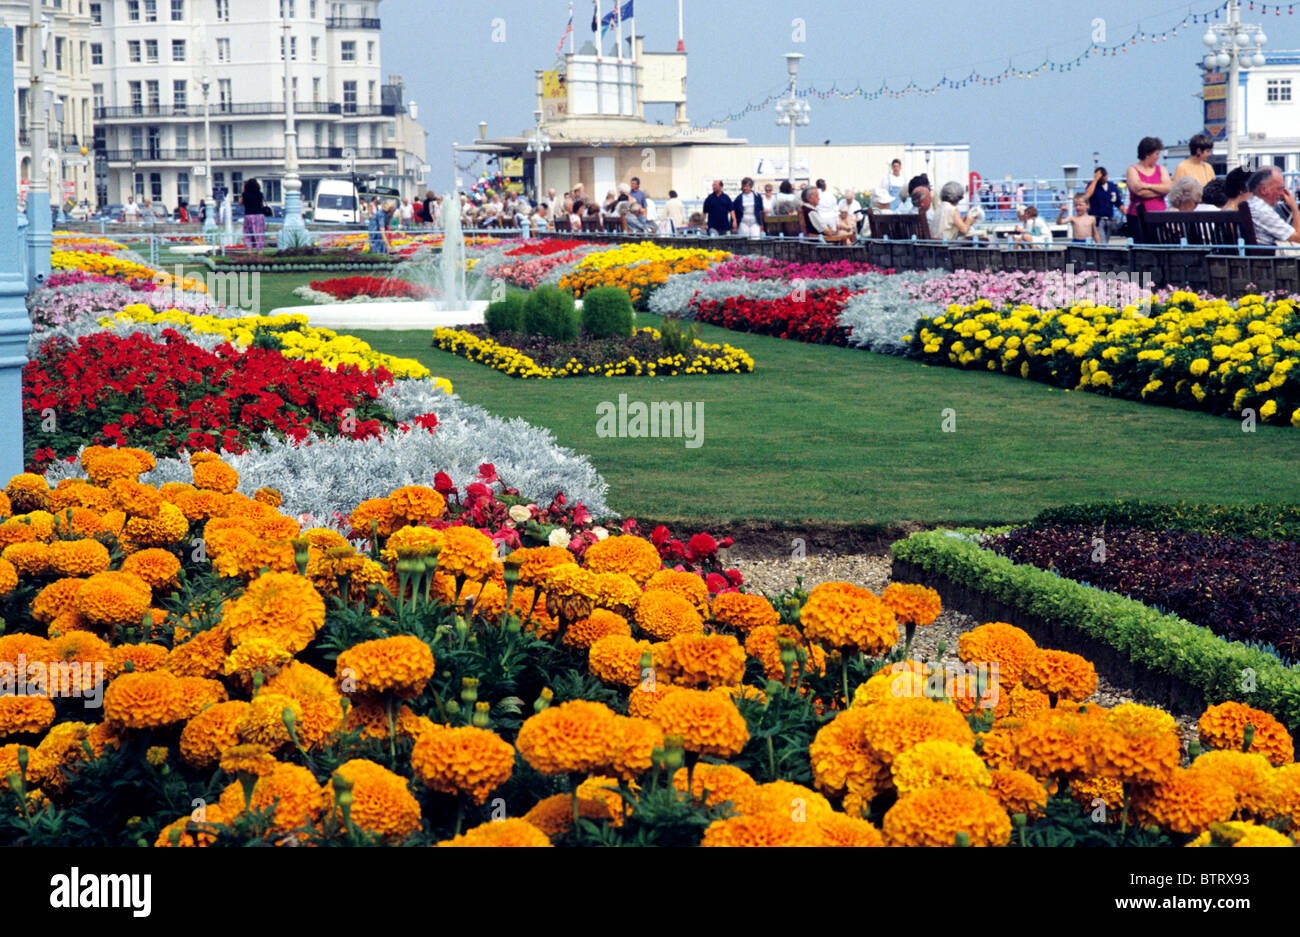 Eastbourne Sussex, seafront flower gardens flowers garden couth coast coastal English resort promenade promenades - Stock Image